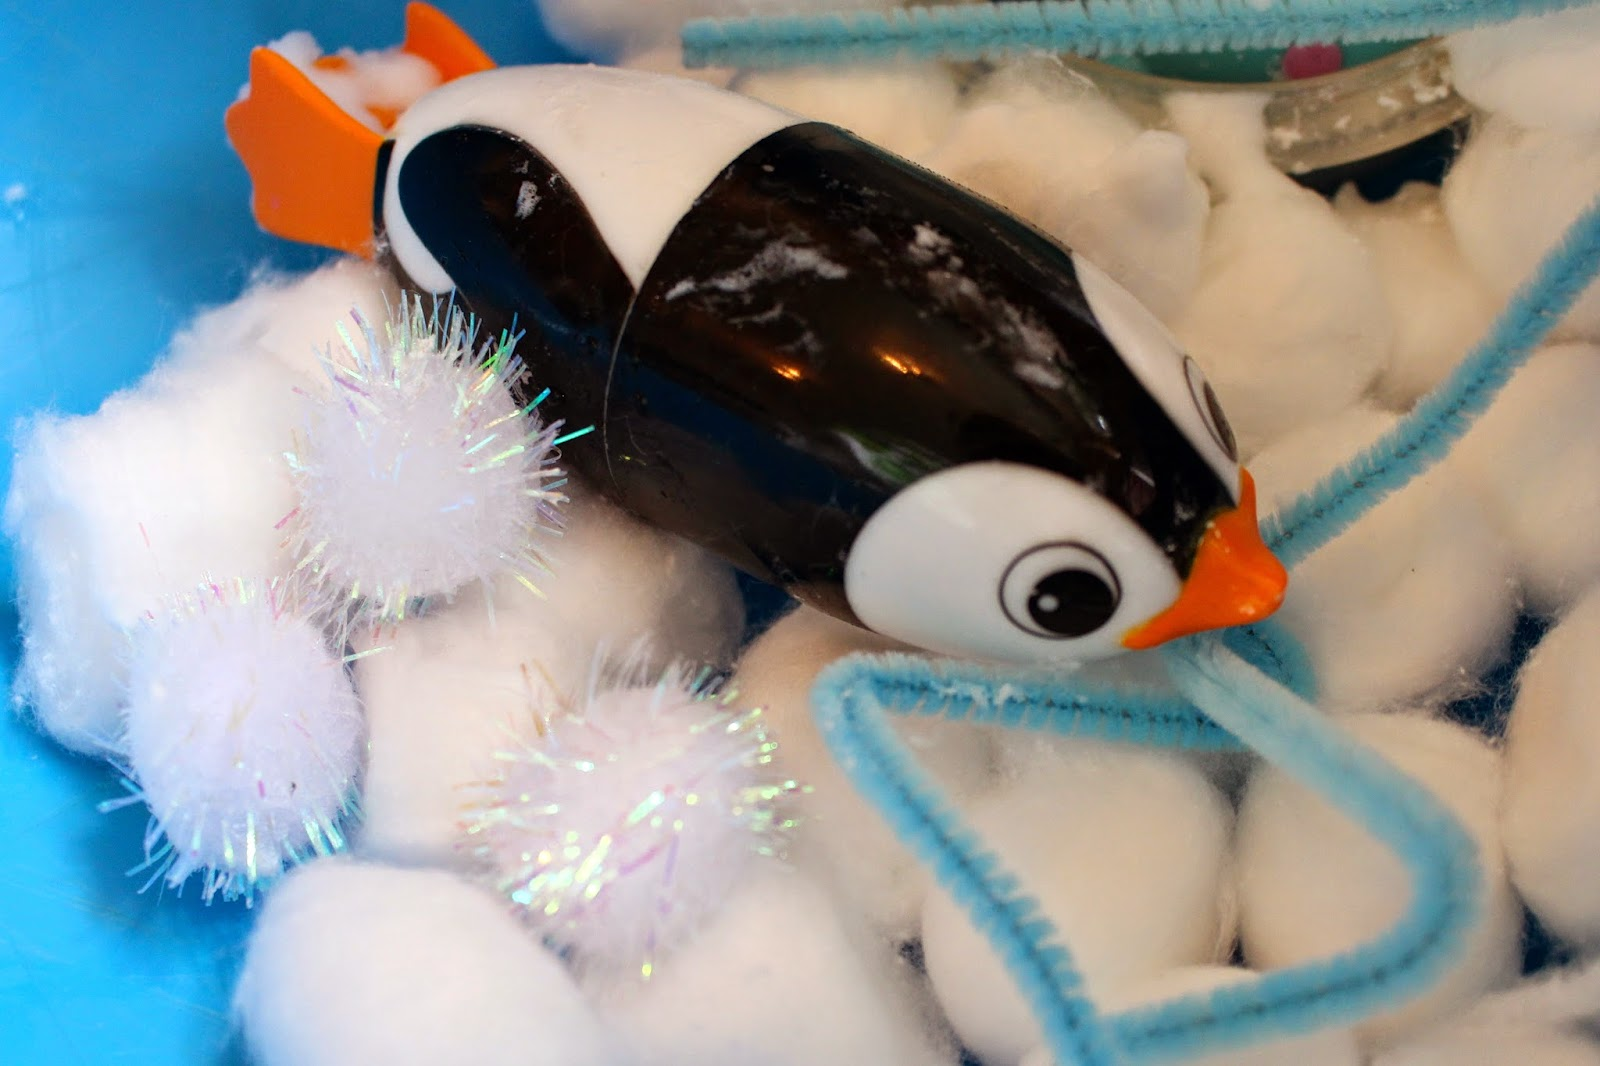 Snowy sensory play activity for toddlers and preschoolers.  Create a simple small world winter scene using foam soap, penguins and polar bears.